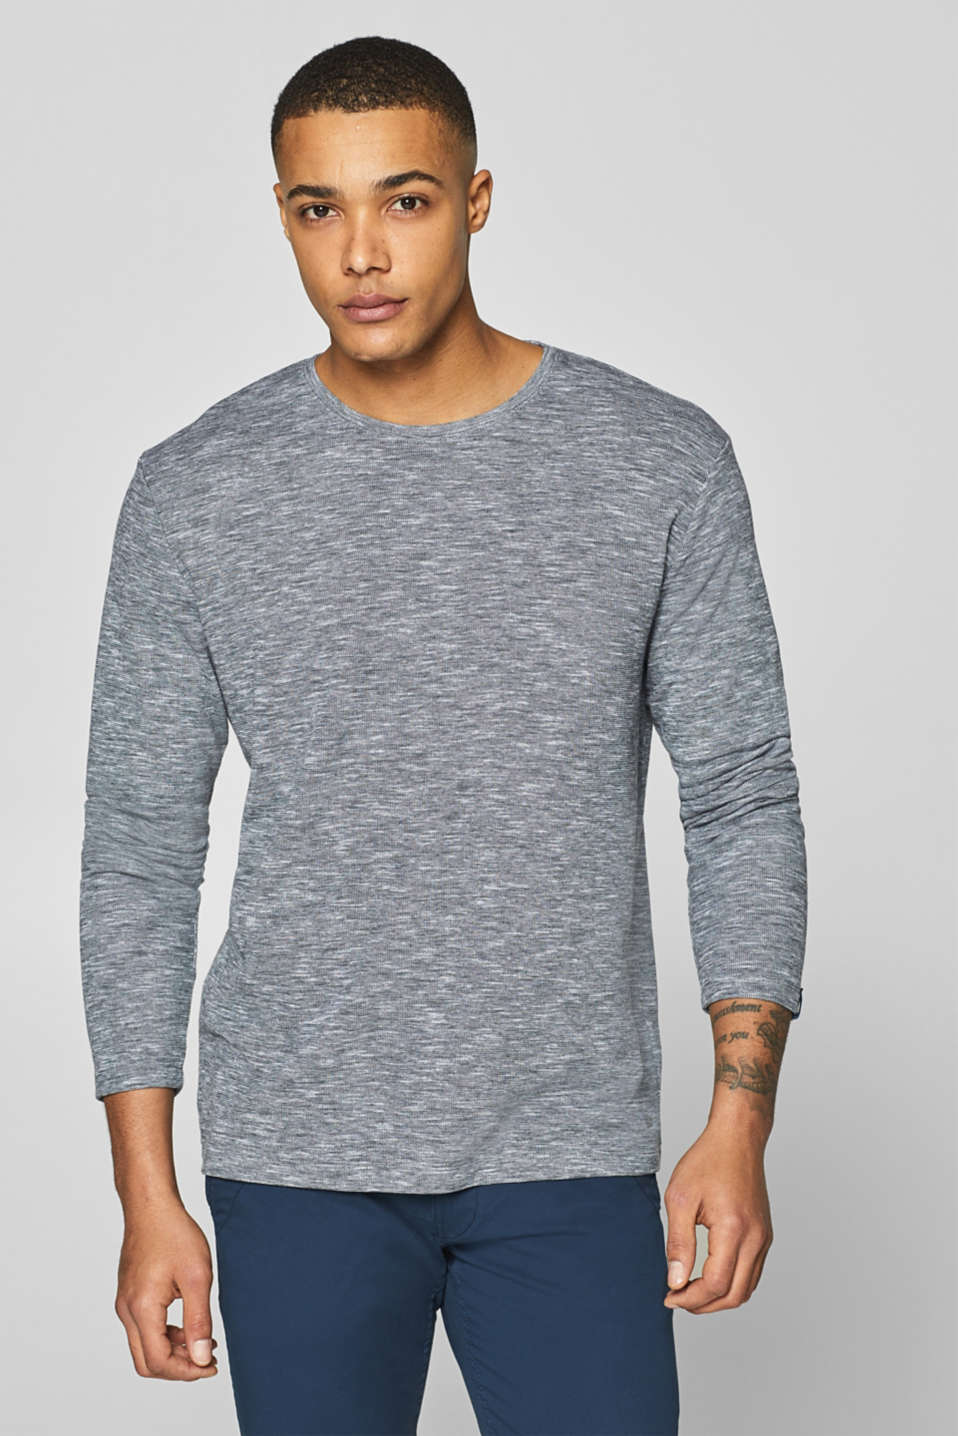 edc - Long sleeve jersey top in 100% cotton